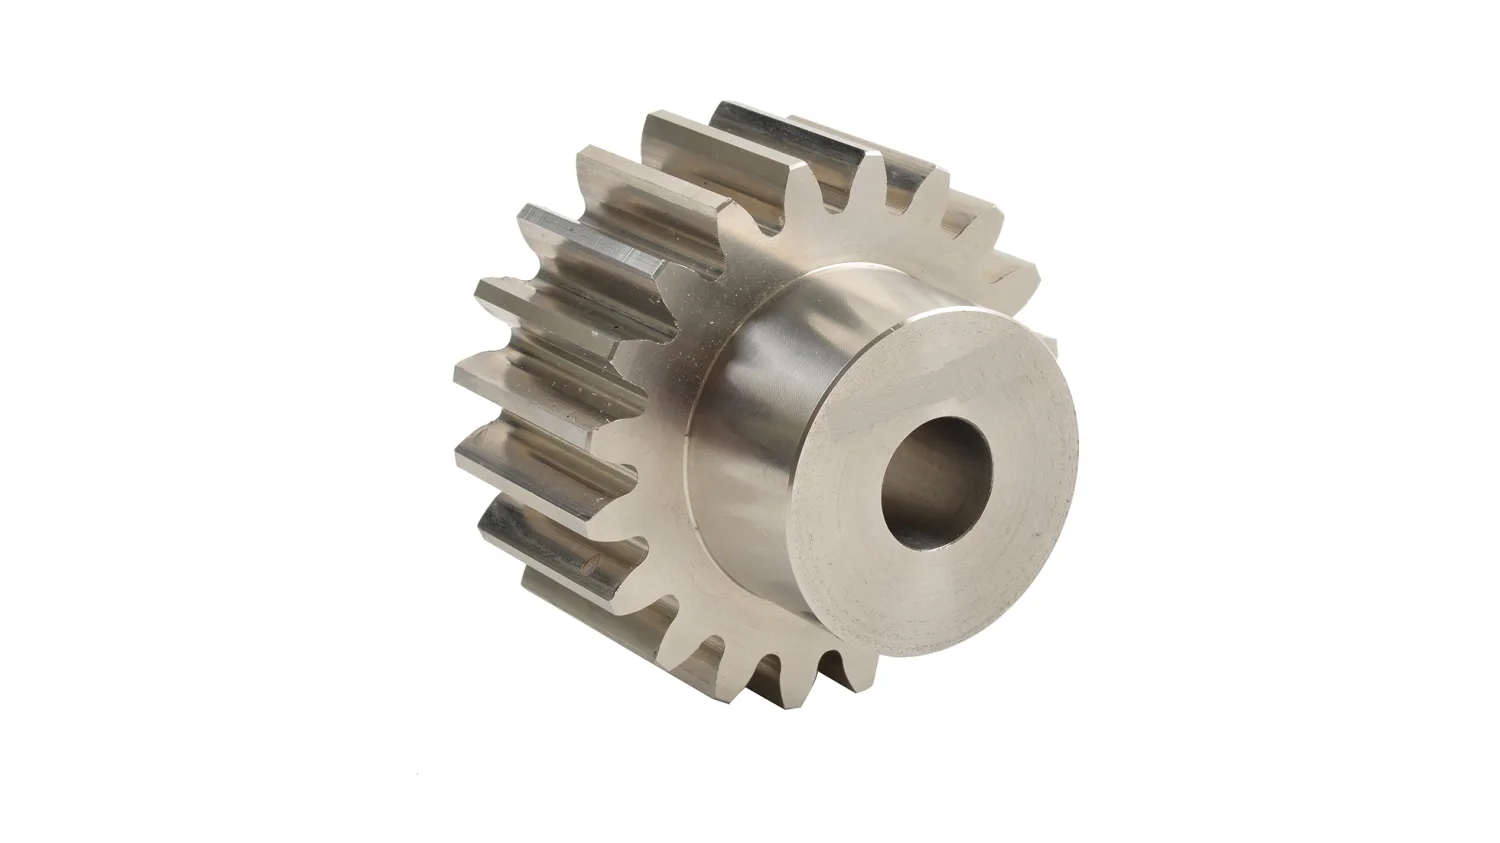 1-Mod-x-54-Tooth-Metric-Spur-Gear-in-Steel